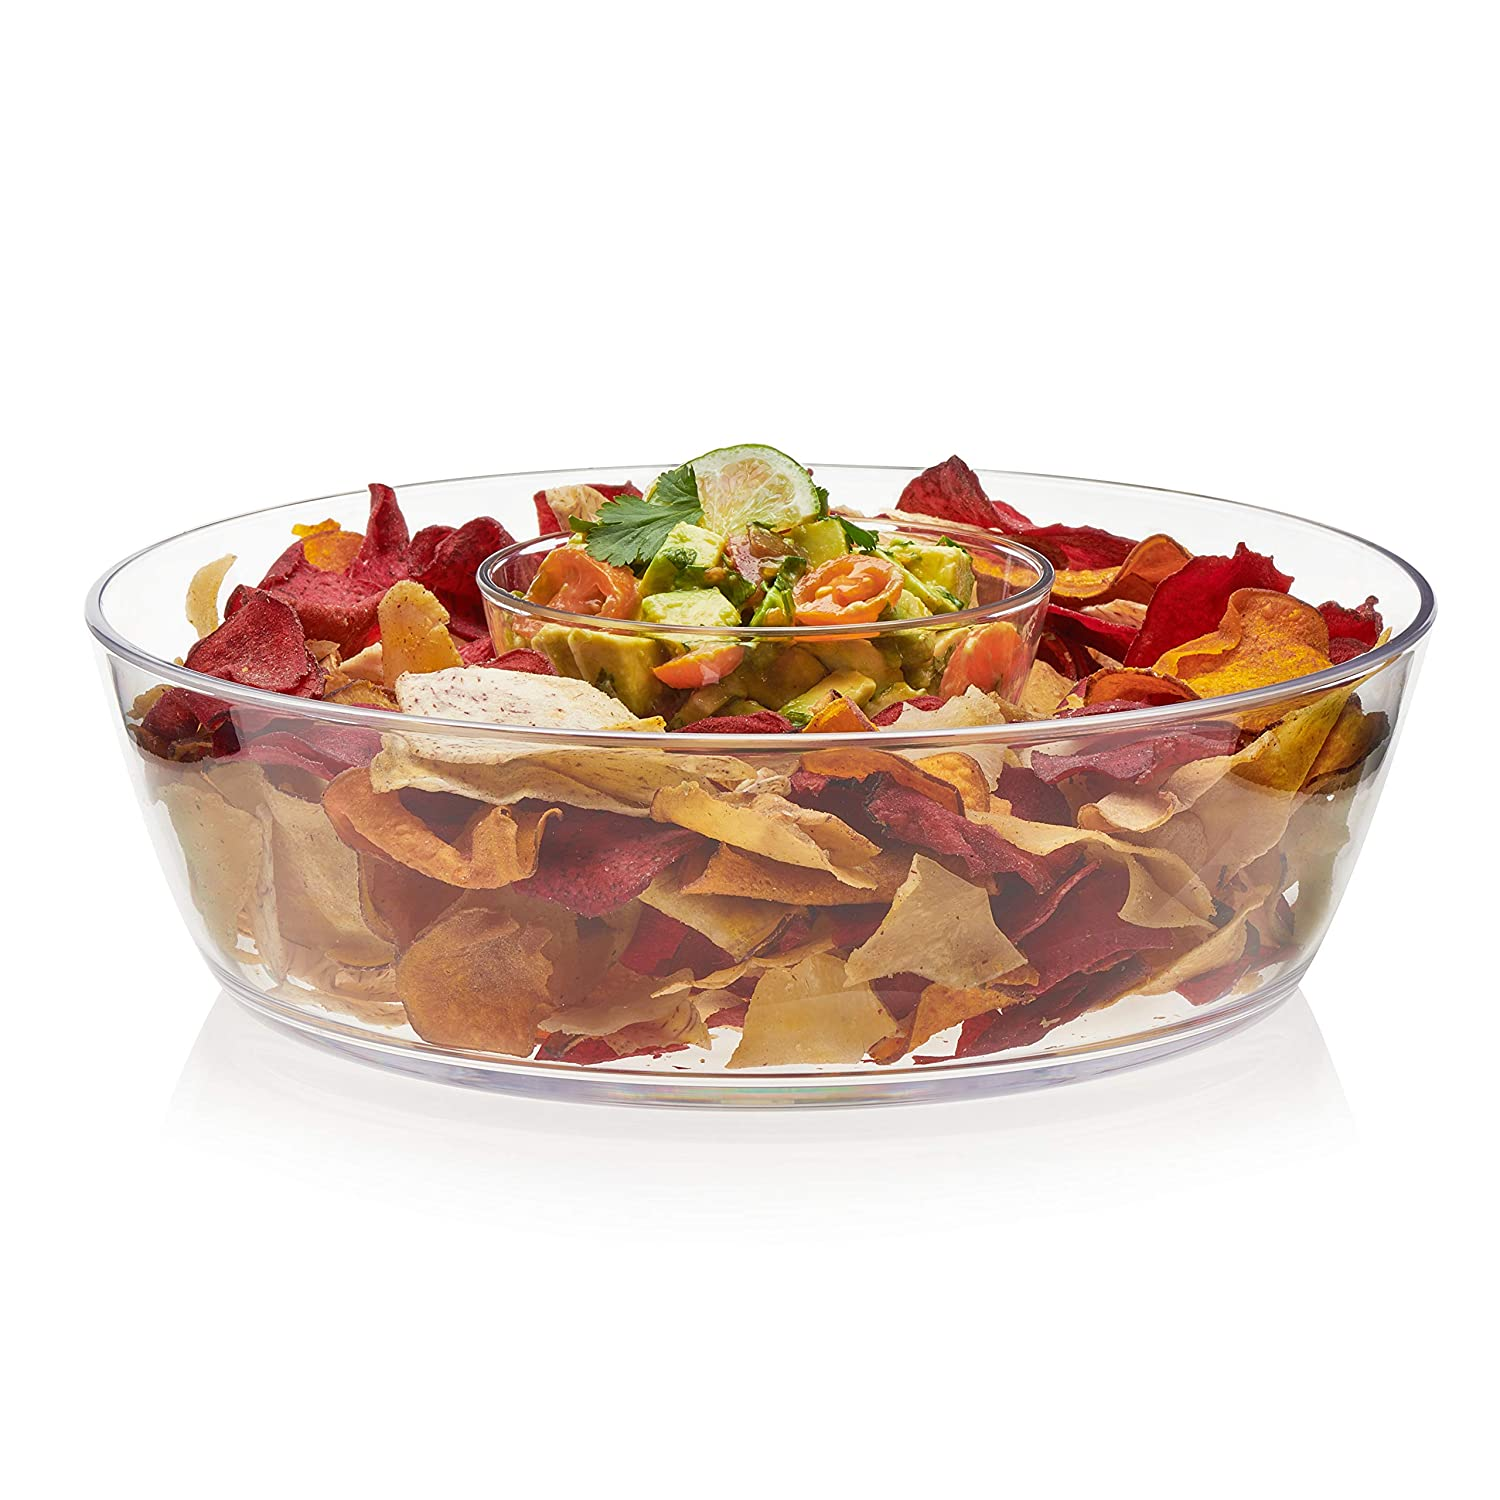 Libbey Indoors Out 2-Piece Break-Resistant Chip and Dip Bowl Set